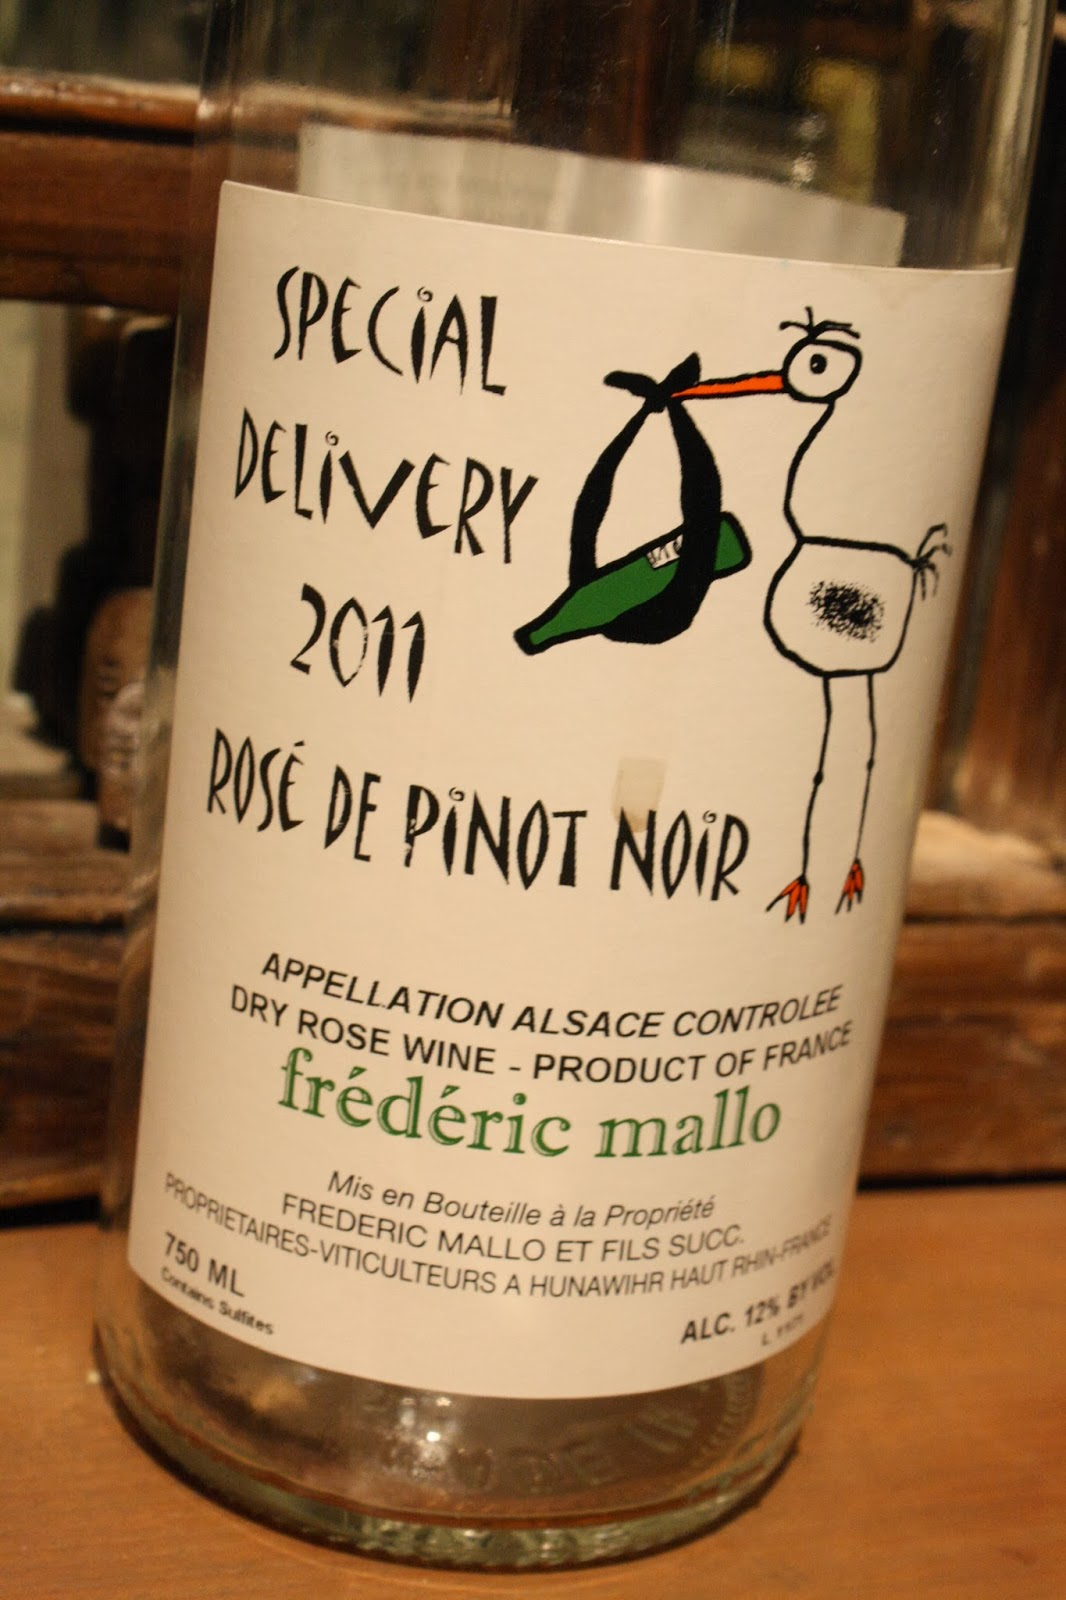 France, Rose Wine, Special Deliver, Rose de Pinot Noir 2011